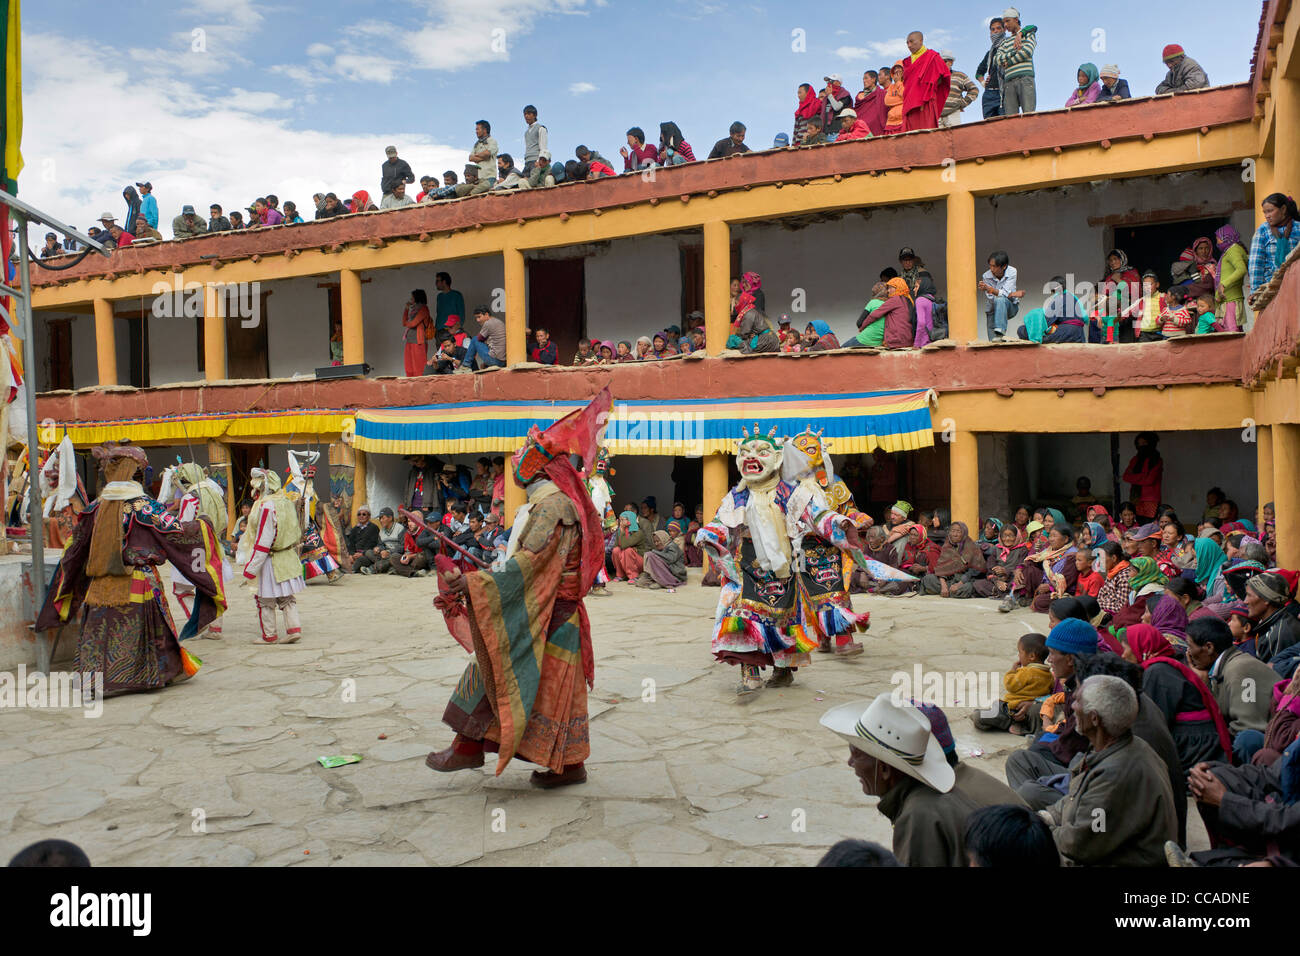 Masked Cham Dancers in the courtyard of Korzok Gompa during the Korzok Gustor, Lake Tsomoriri, (Ladakh) Jammu & - Stock Image